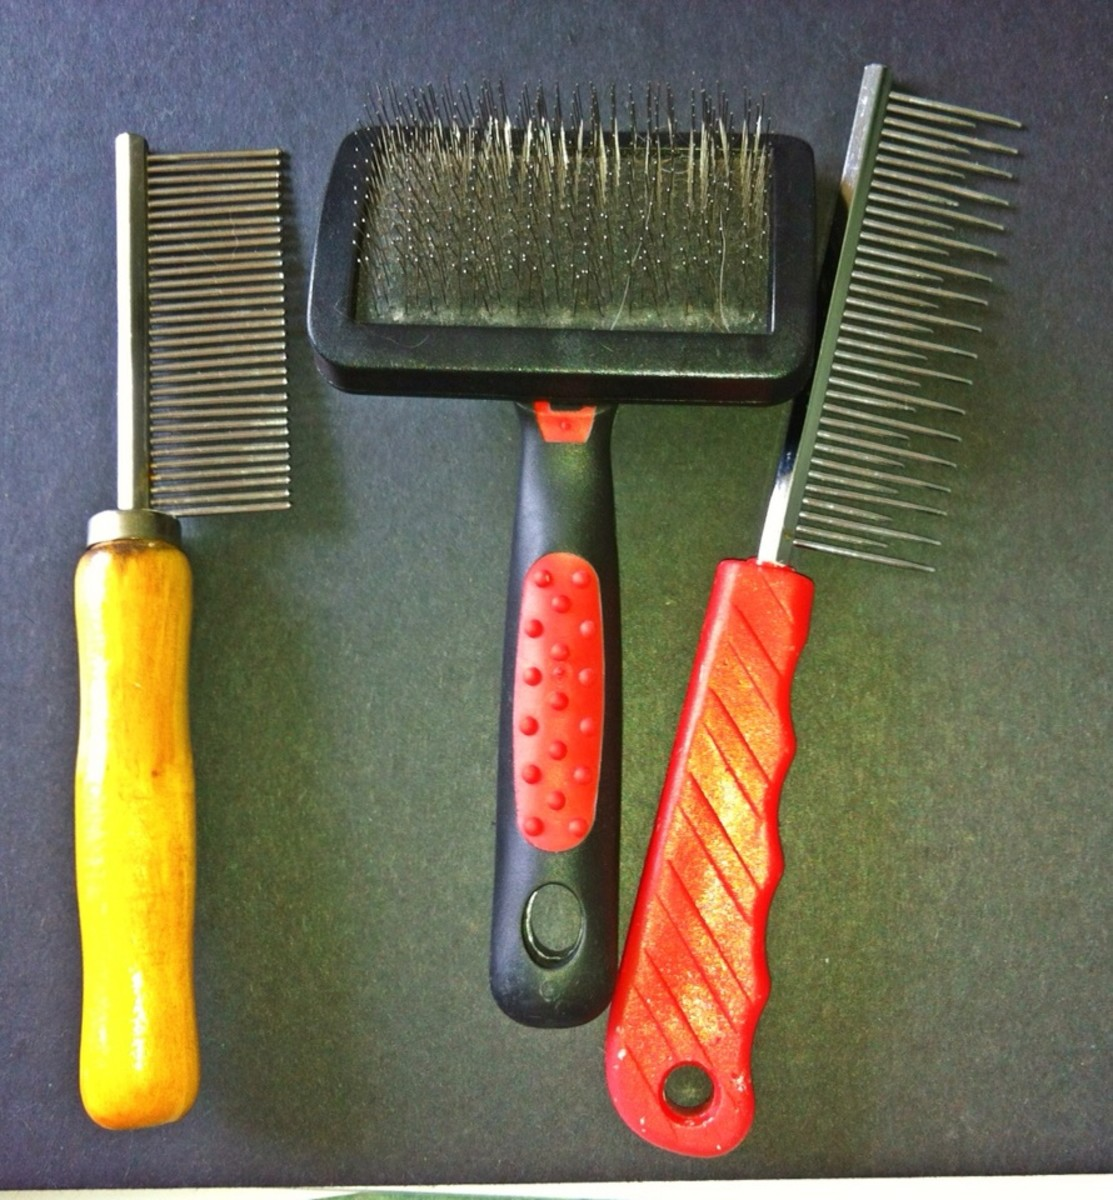 Combs and slicker brush.